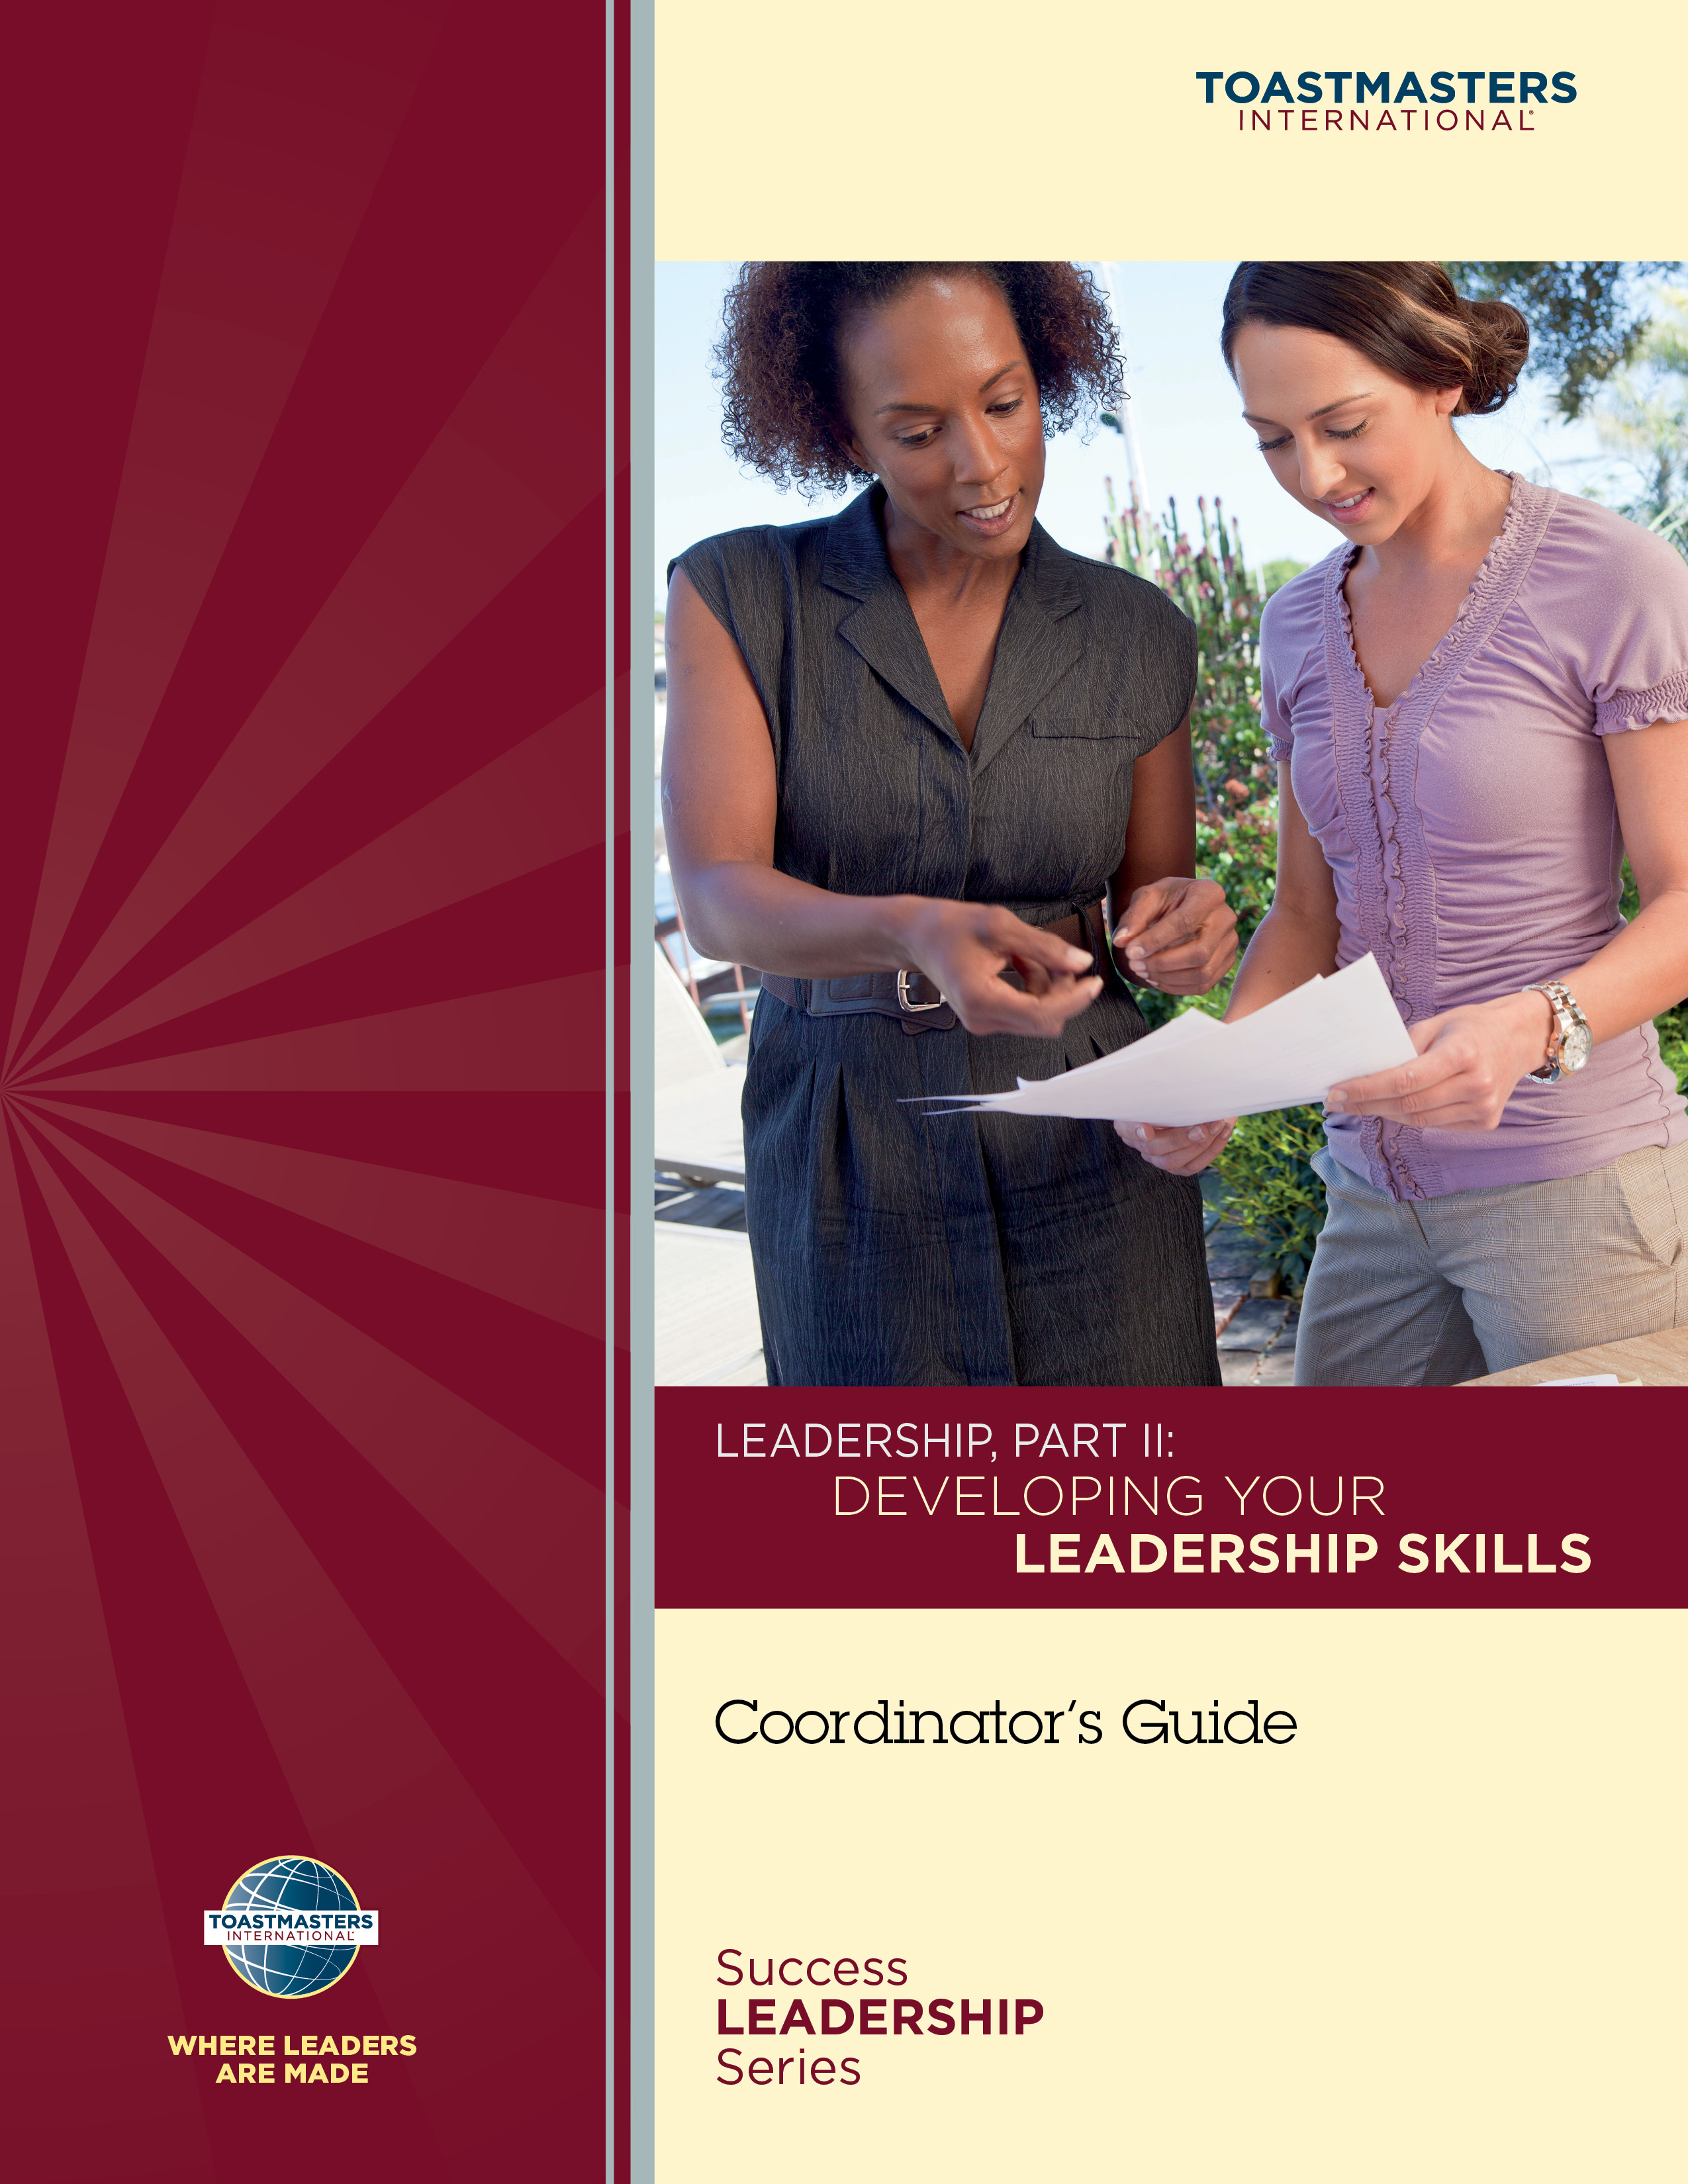 Leadership, Part II: Developing Your Leadership Skills Coordinator's Guide